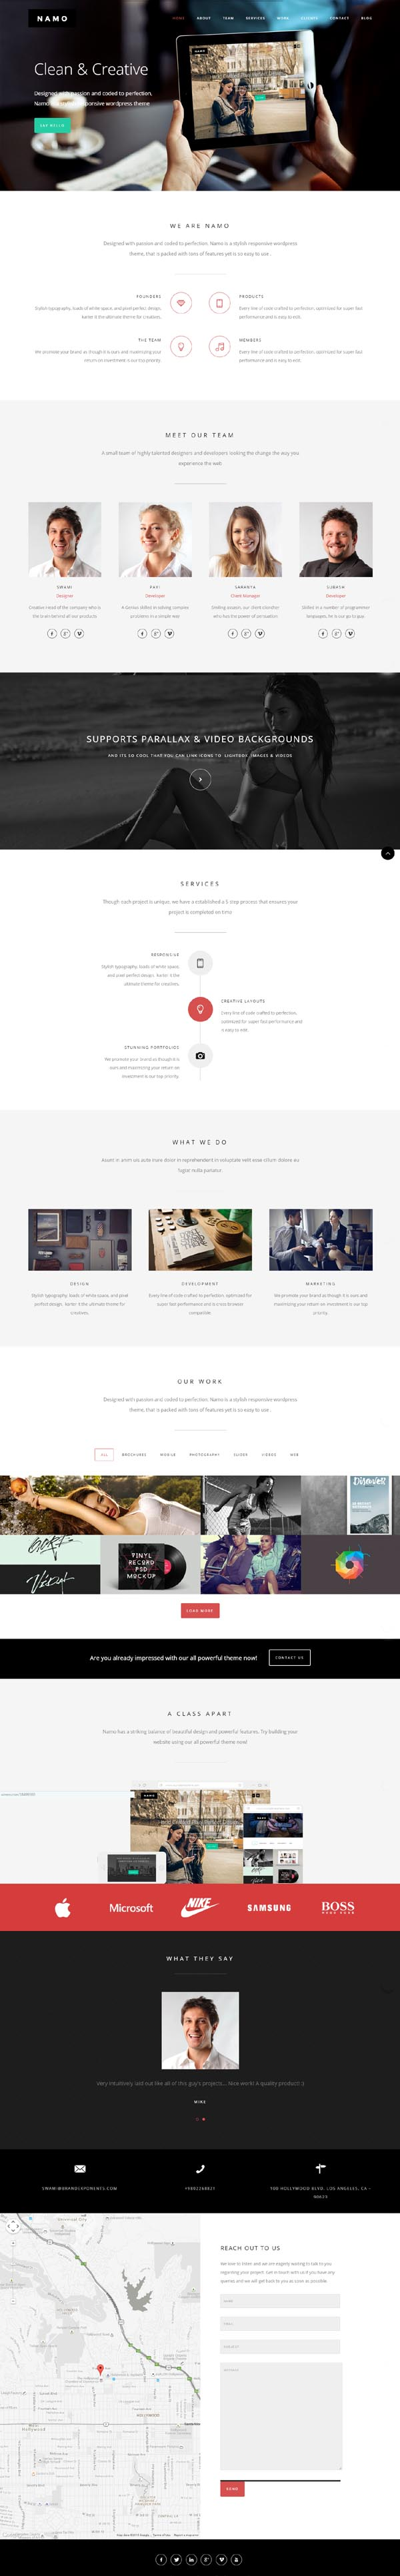 NAMO - Creative Multi-Purpose HTML5 Theme